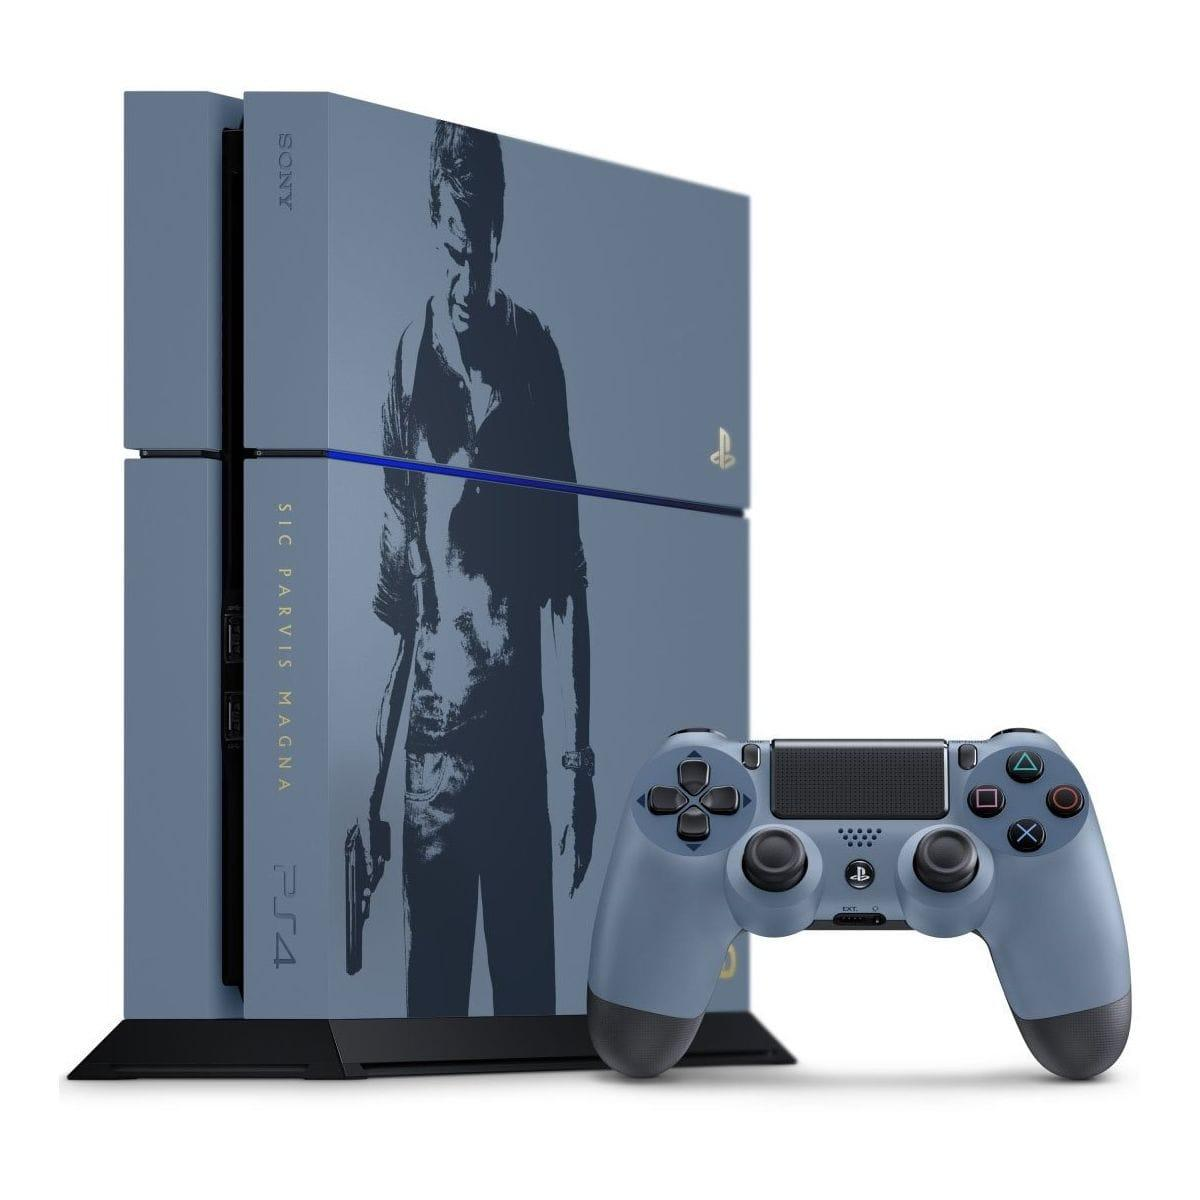 Console Sony PlayStation 4 Uncharted 4: A Thief's End Limited Edition 1TB + Joystick - Grijs